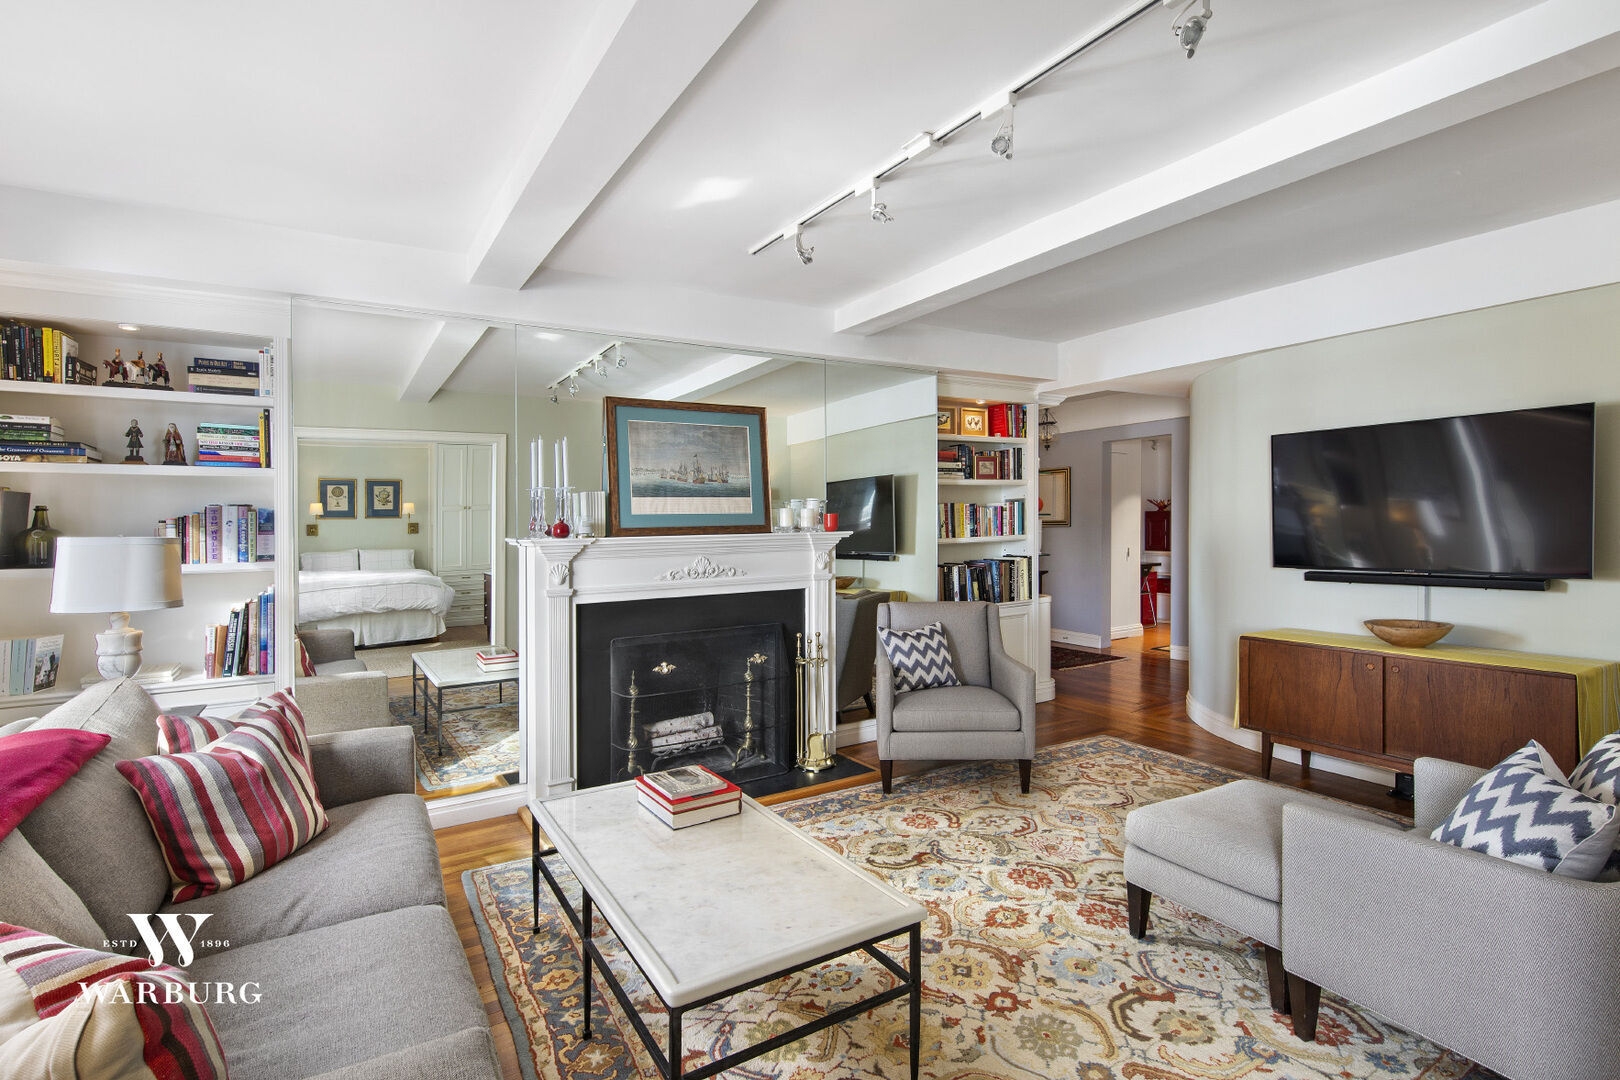 Apartment for sale at 444 East 52nd Street, Apt 6F